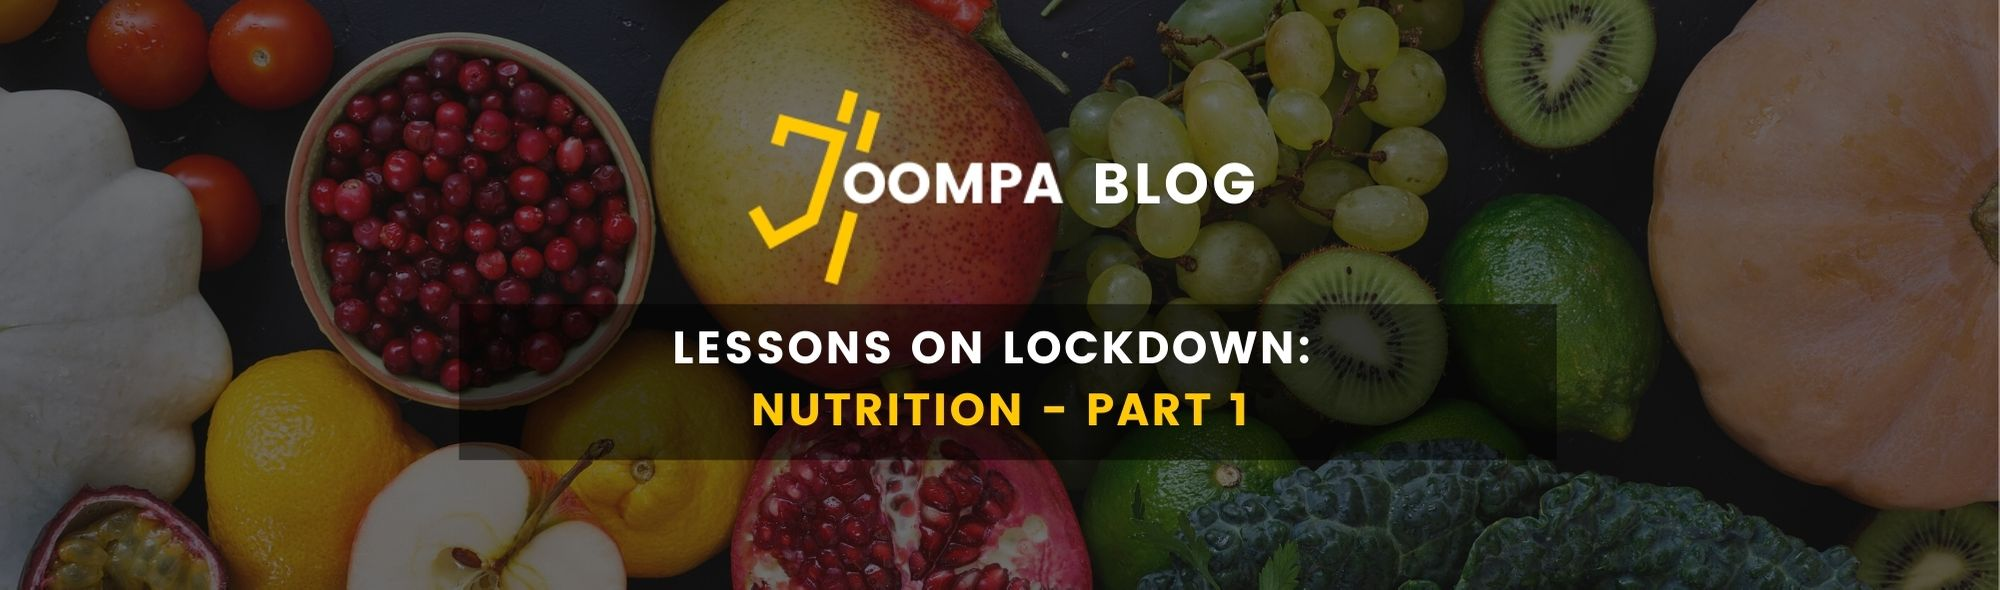 Lessons On Lockdown: Nutrition - Part 1